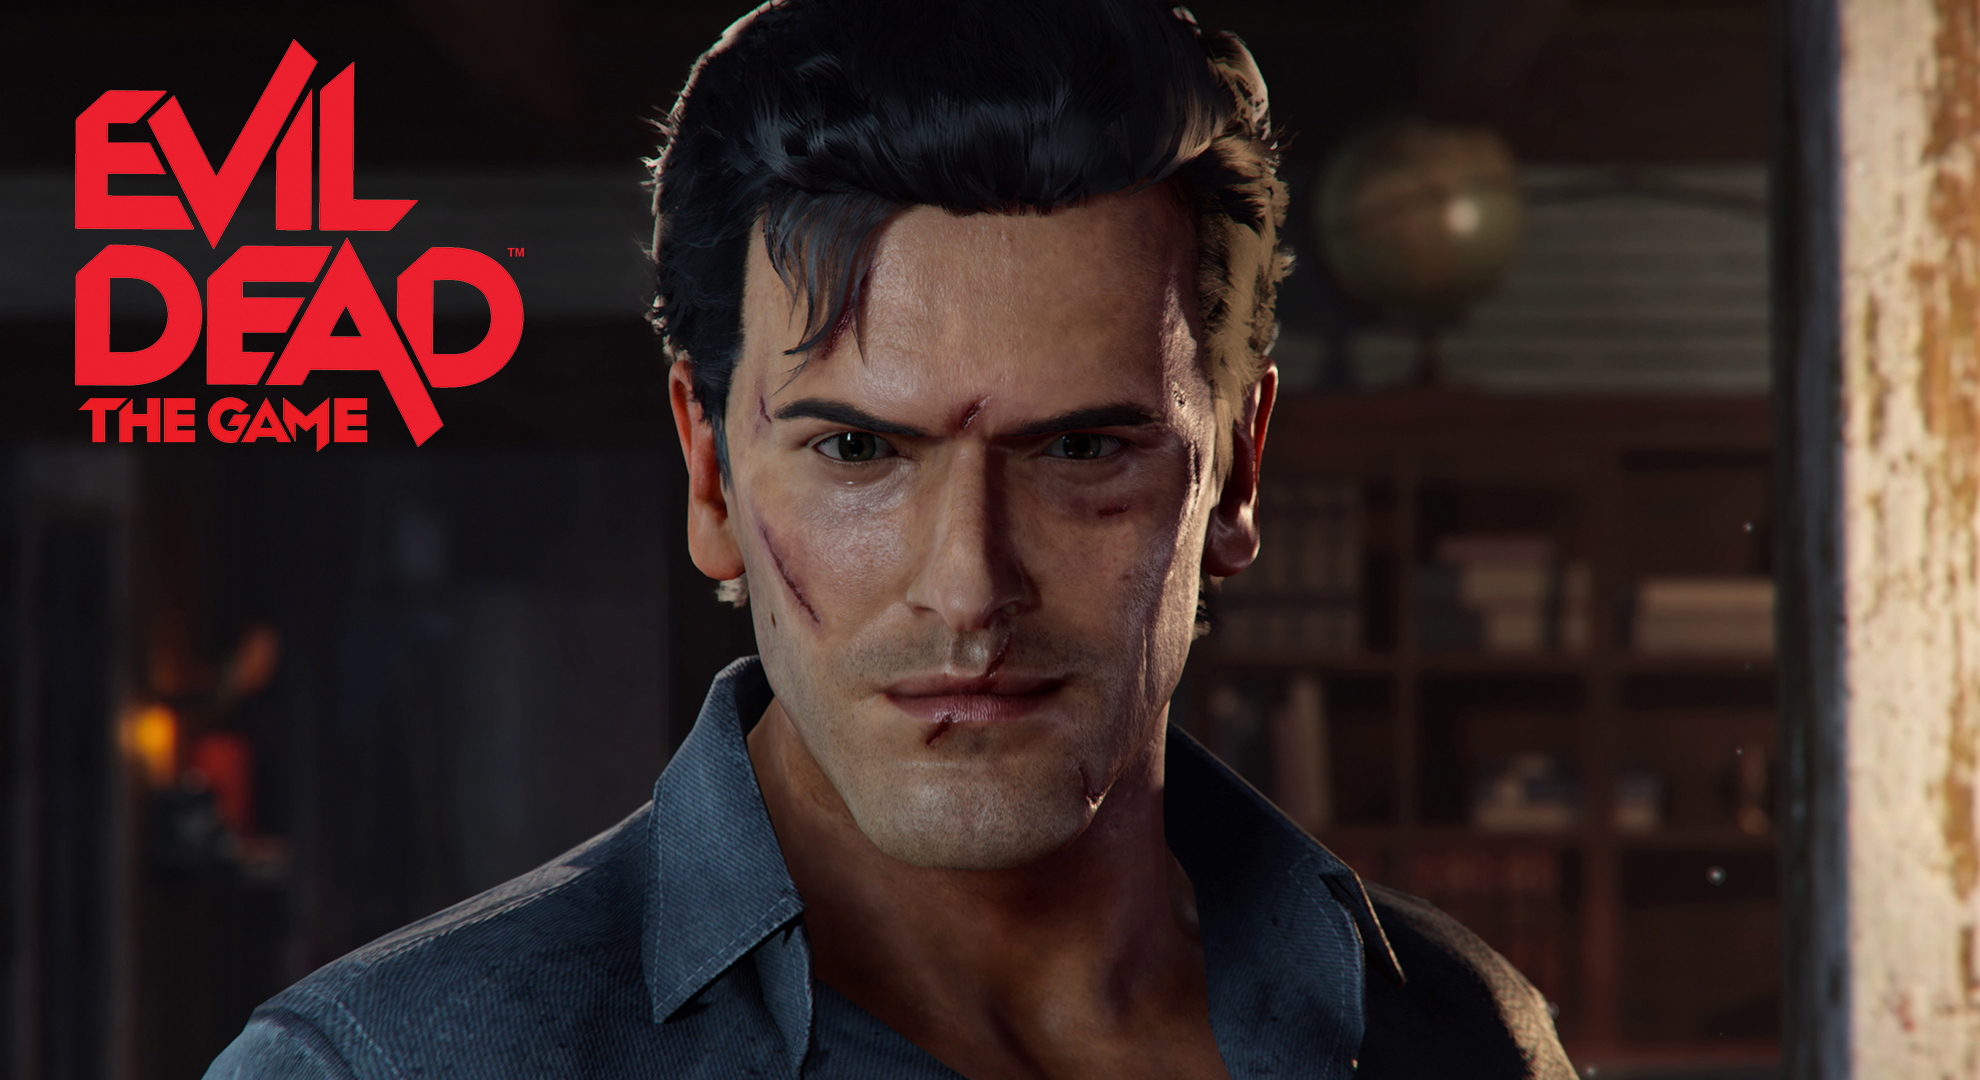 Evil Dead: The Game